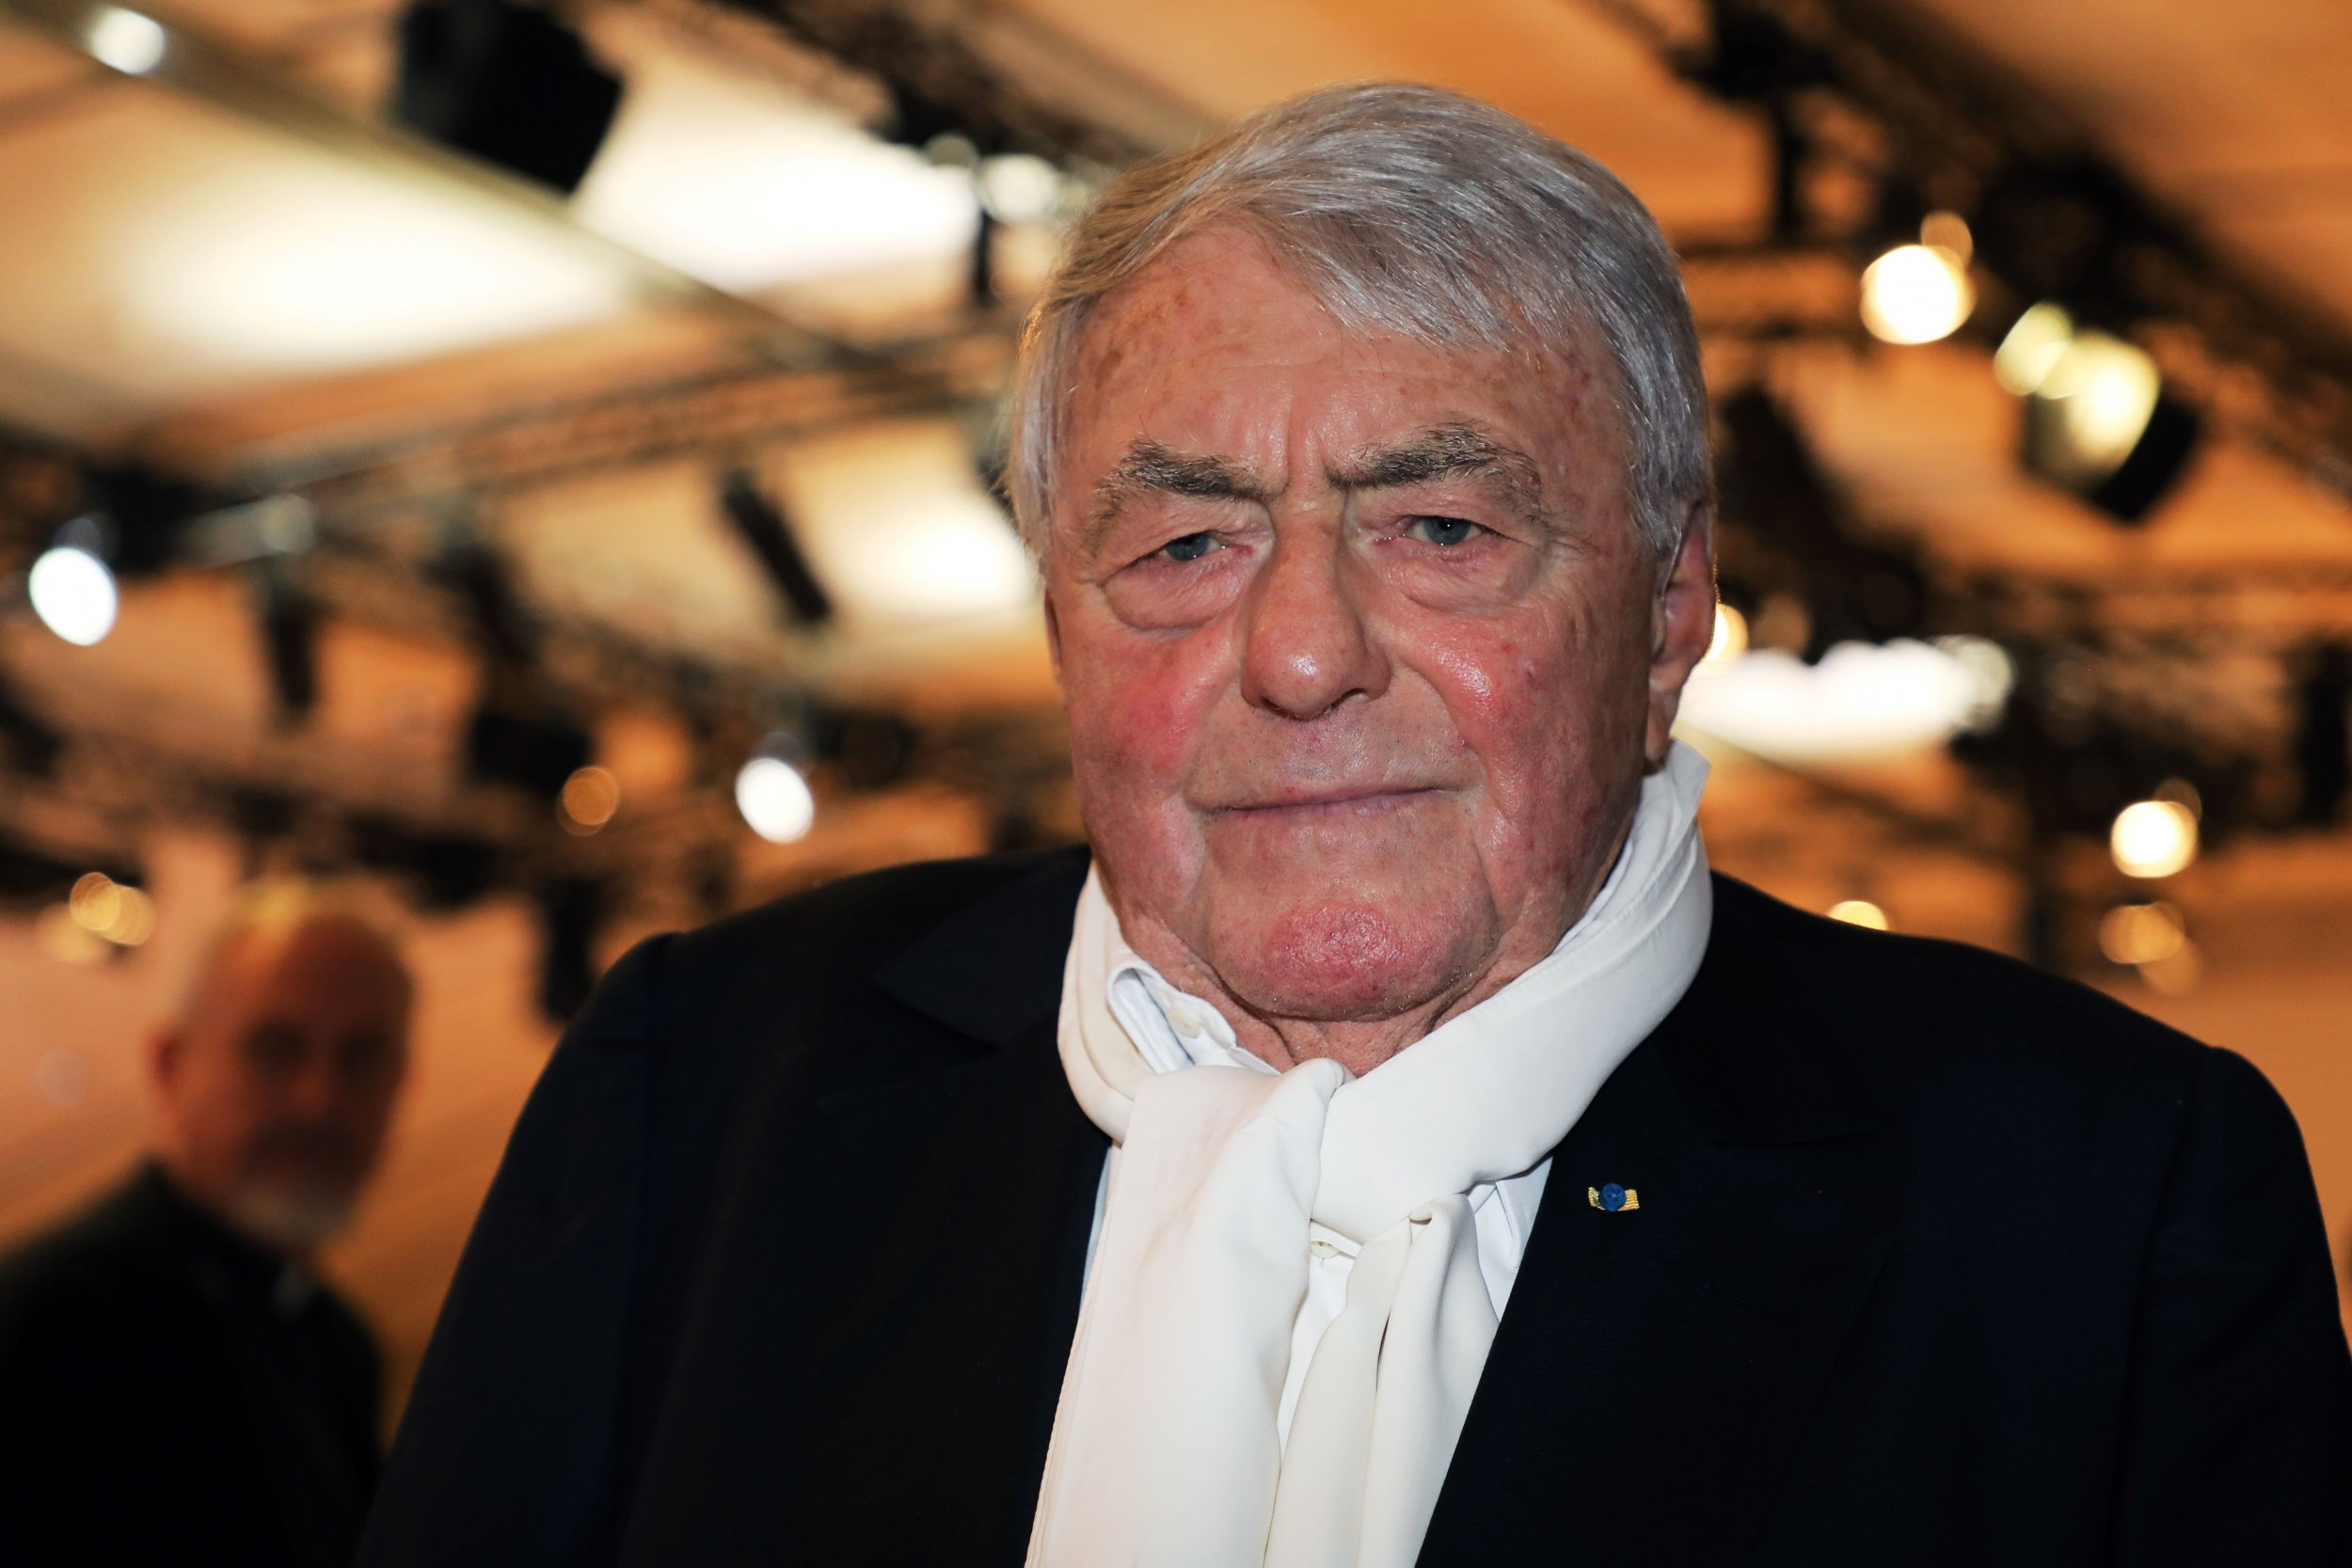 Claude Lanzmann  Director of Seminal Holocaust Documentary  Shoah     Claude Lanzmann  Director of Seminal Holocaust Documentary  Shoah   Dies at  92